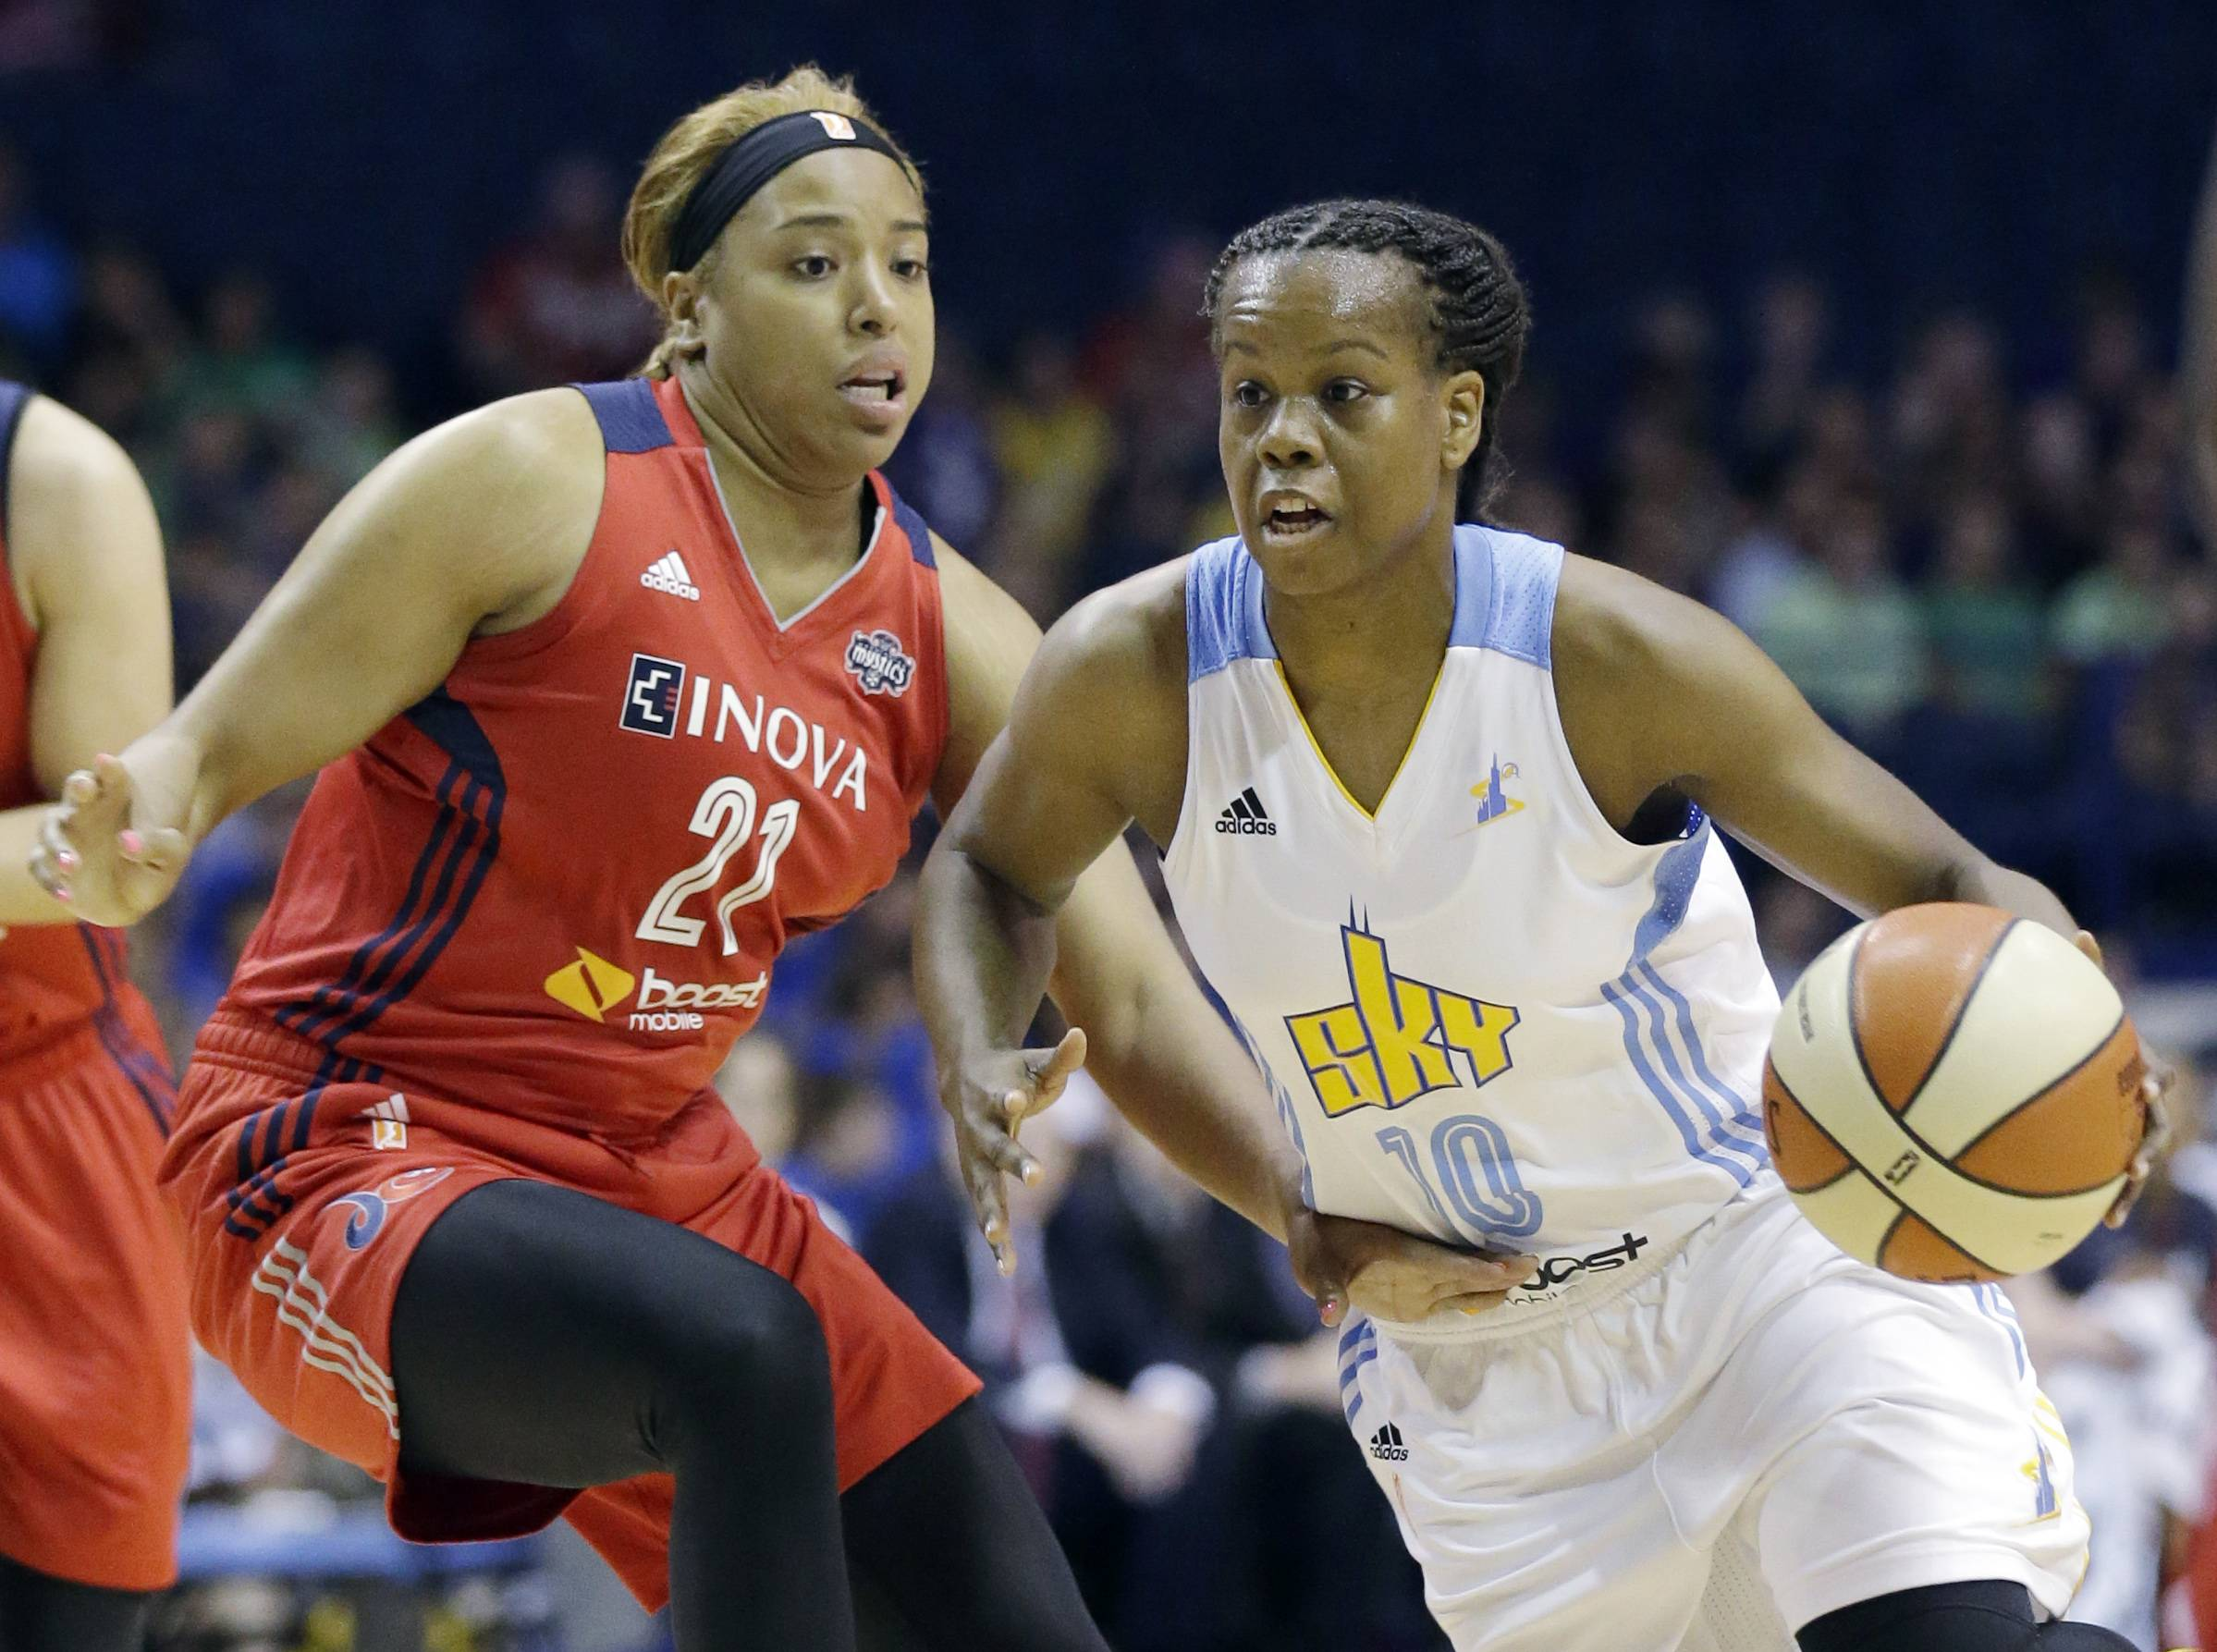 Chicago Sky guard Epiphanny Prince (10), right, scored 14 points against the Washington Mystics on Wednesday but it wasn't enough as the Sky fell to 8-11 in the WNBA with its 10th loss in its last 13 games.